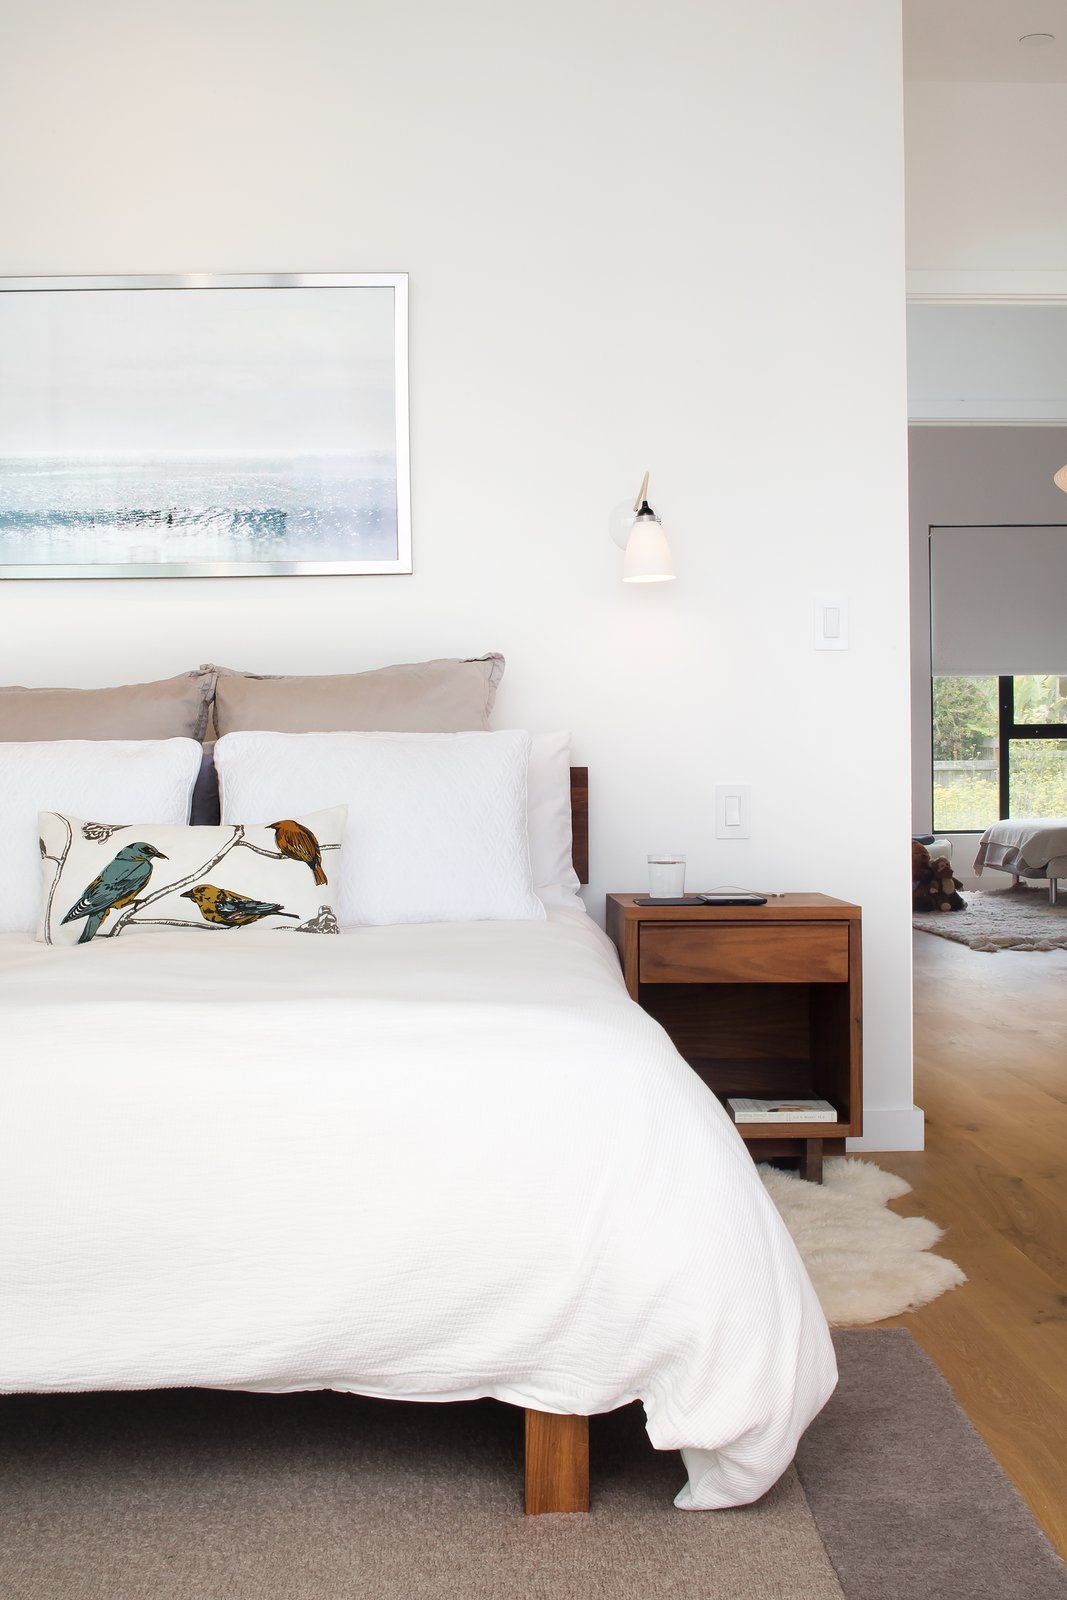 Bedroom and Bed  27th Street - Noe Valley by patrick perez/designpad architecture